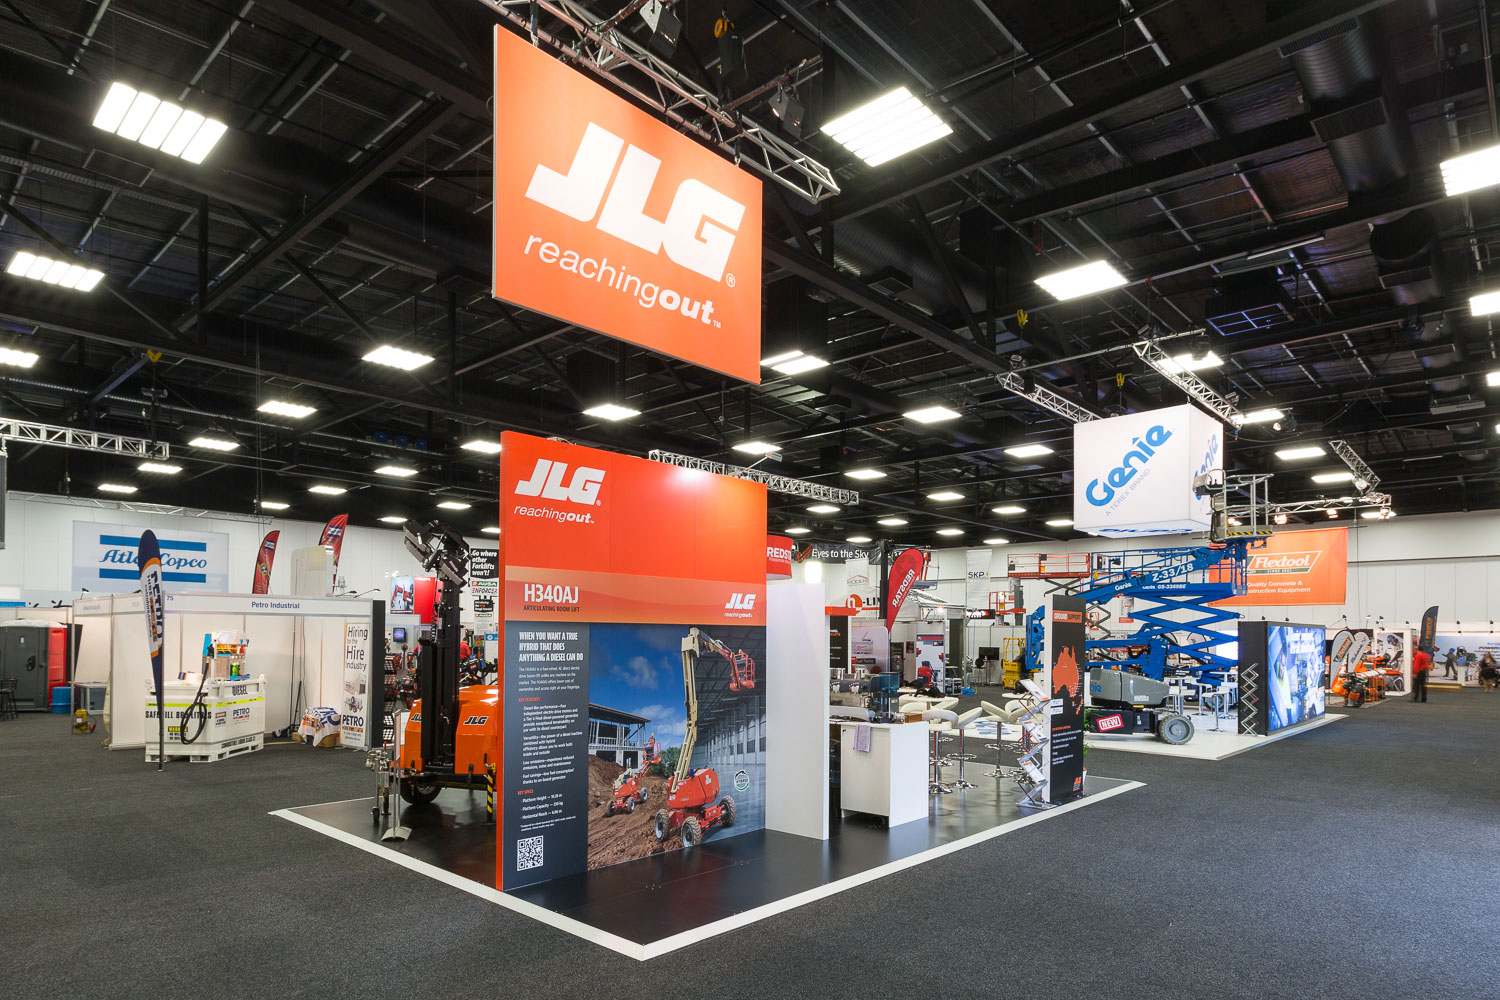 Photography Expo Stands : Events u2014 asbcreative photography commercial photographer adelaide